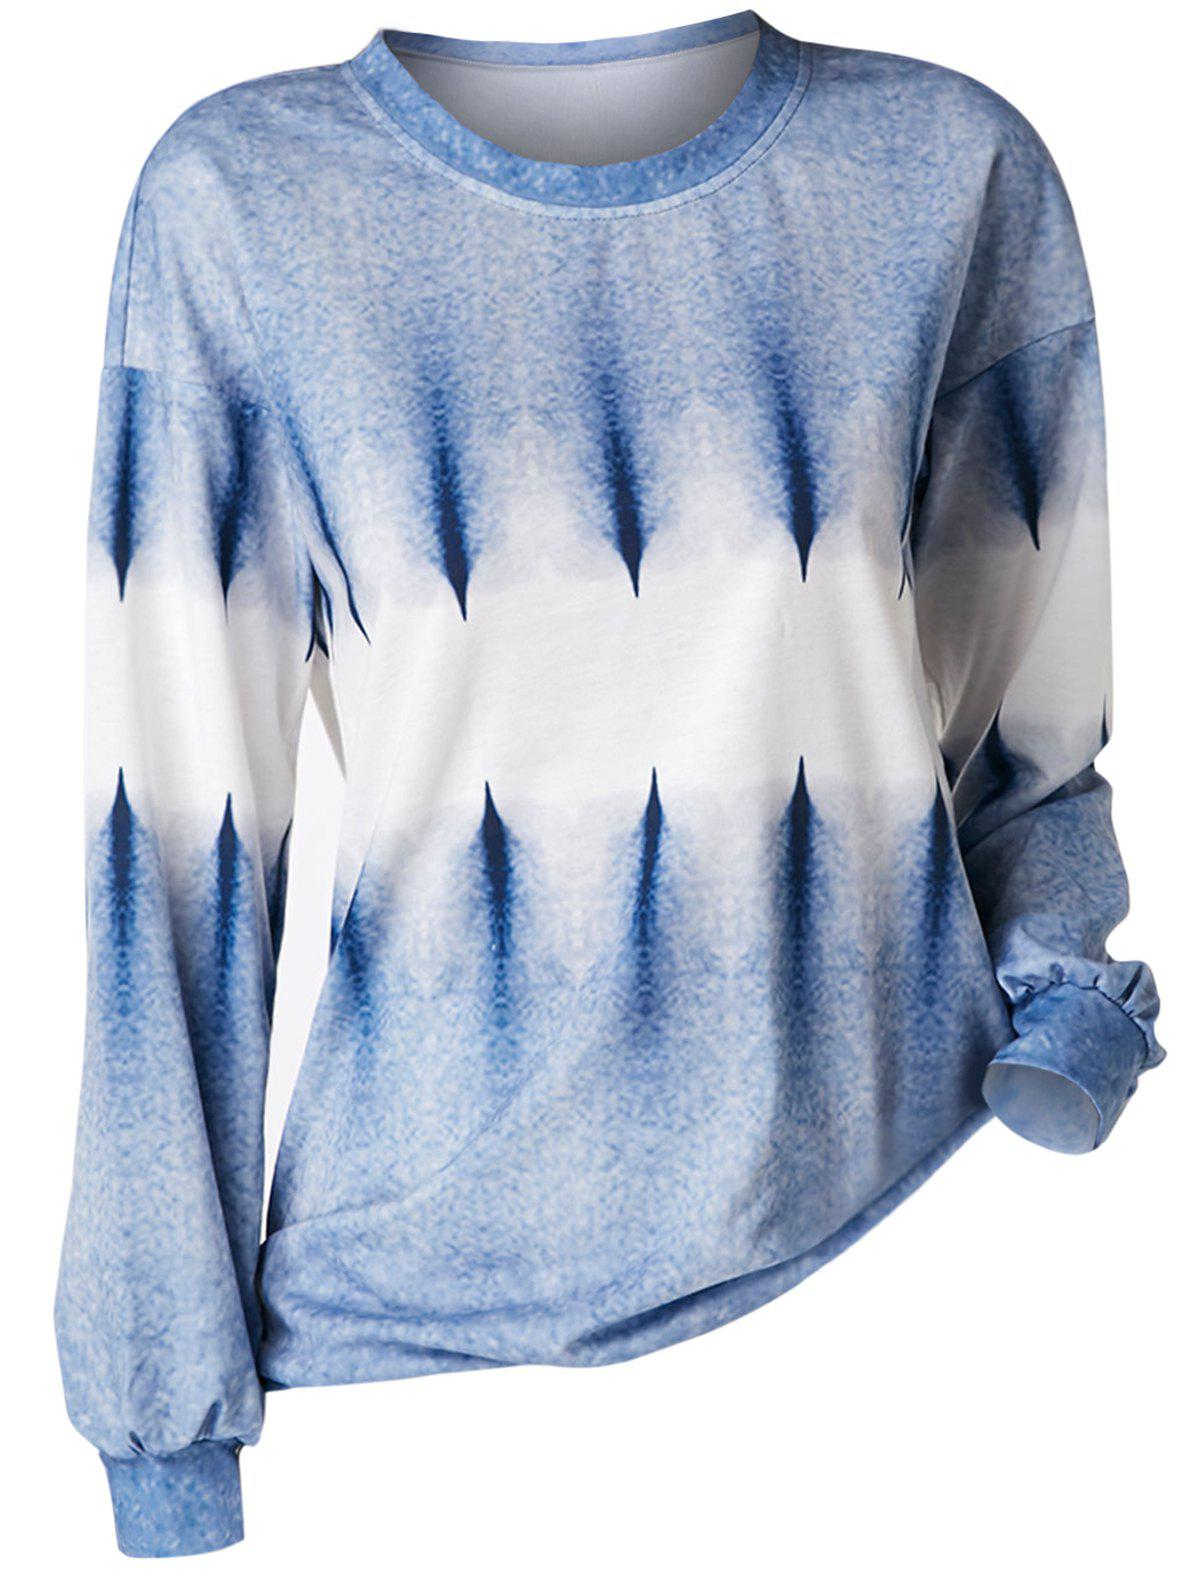 Plus Size Drop Shoulder Tie Dye Sweatshirt - DAY SKY BLUE 4X